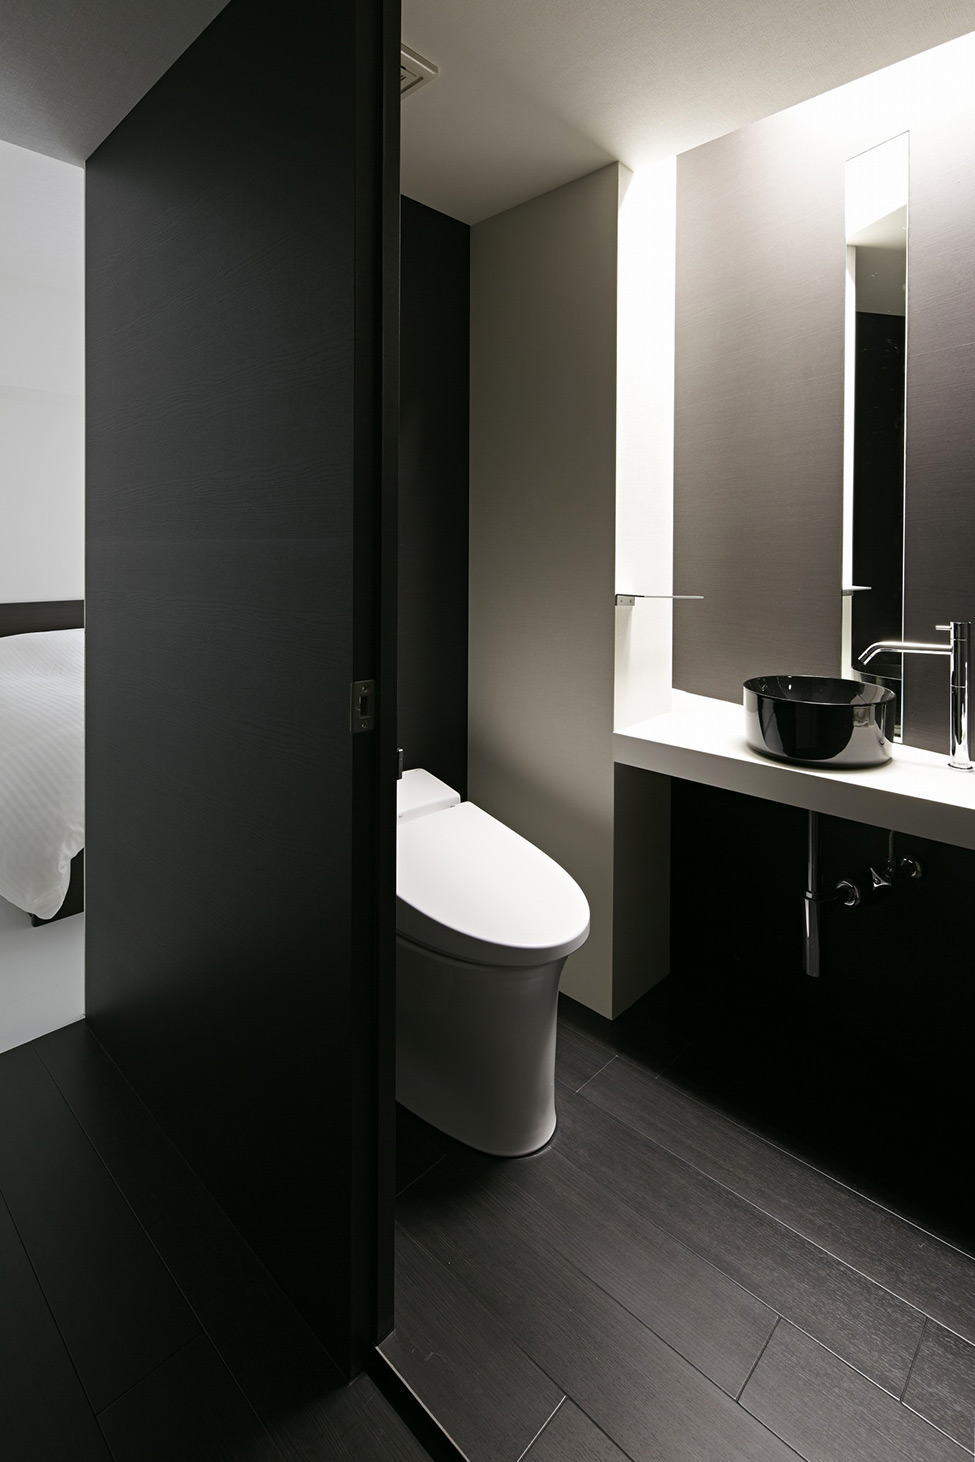 black and white apartment design in tokyo contemporary interior design minimalsit space clean lines edgy contemporary design clena space bathroom design  elegant finishes